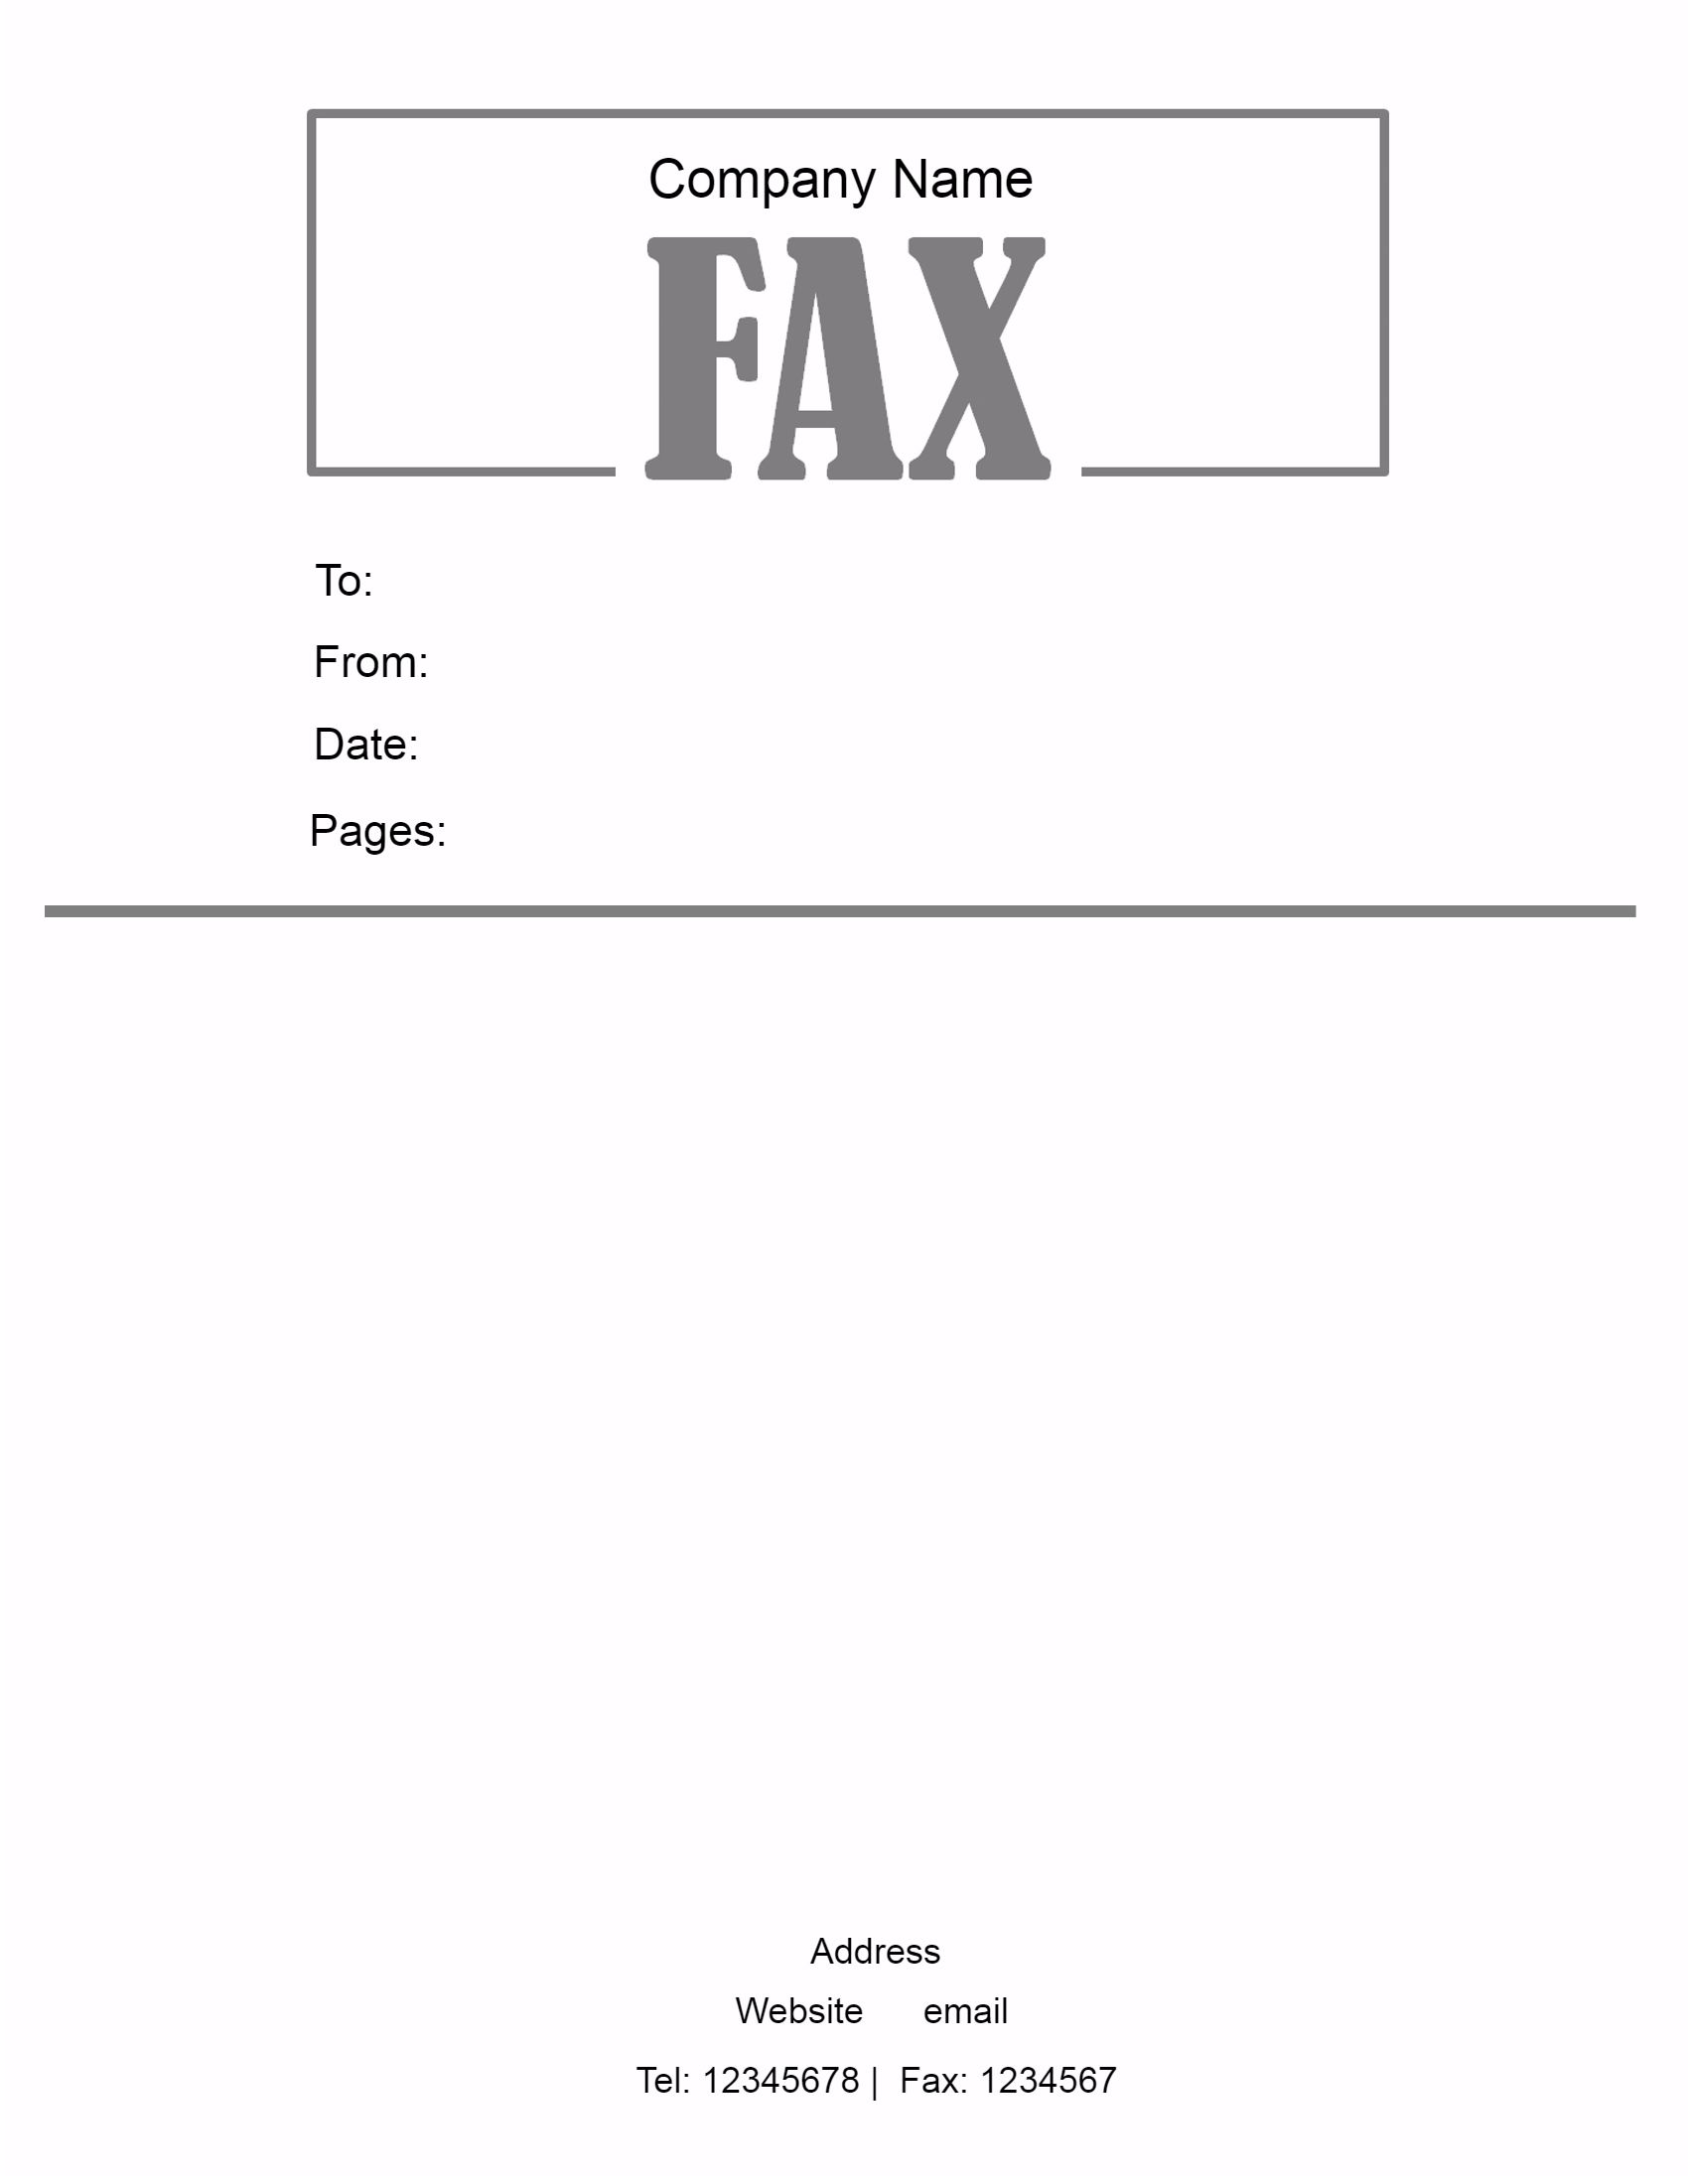 doc fax covers fax cover sheet template printable fax cover letter template fax covers